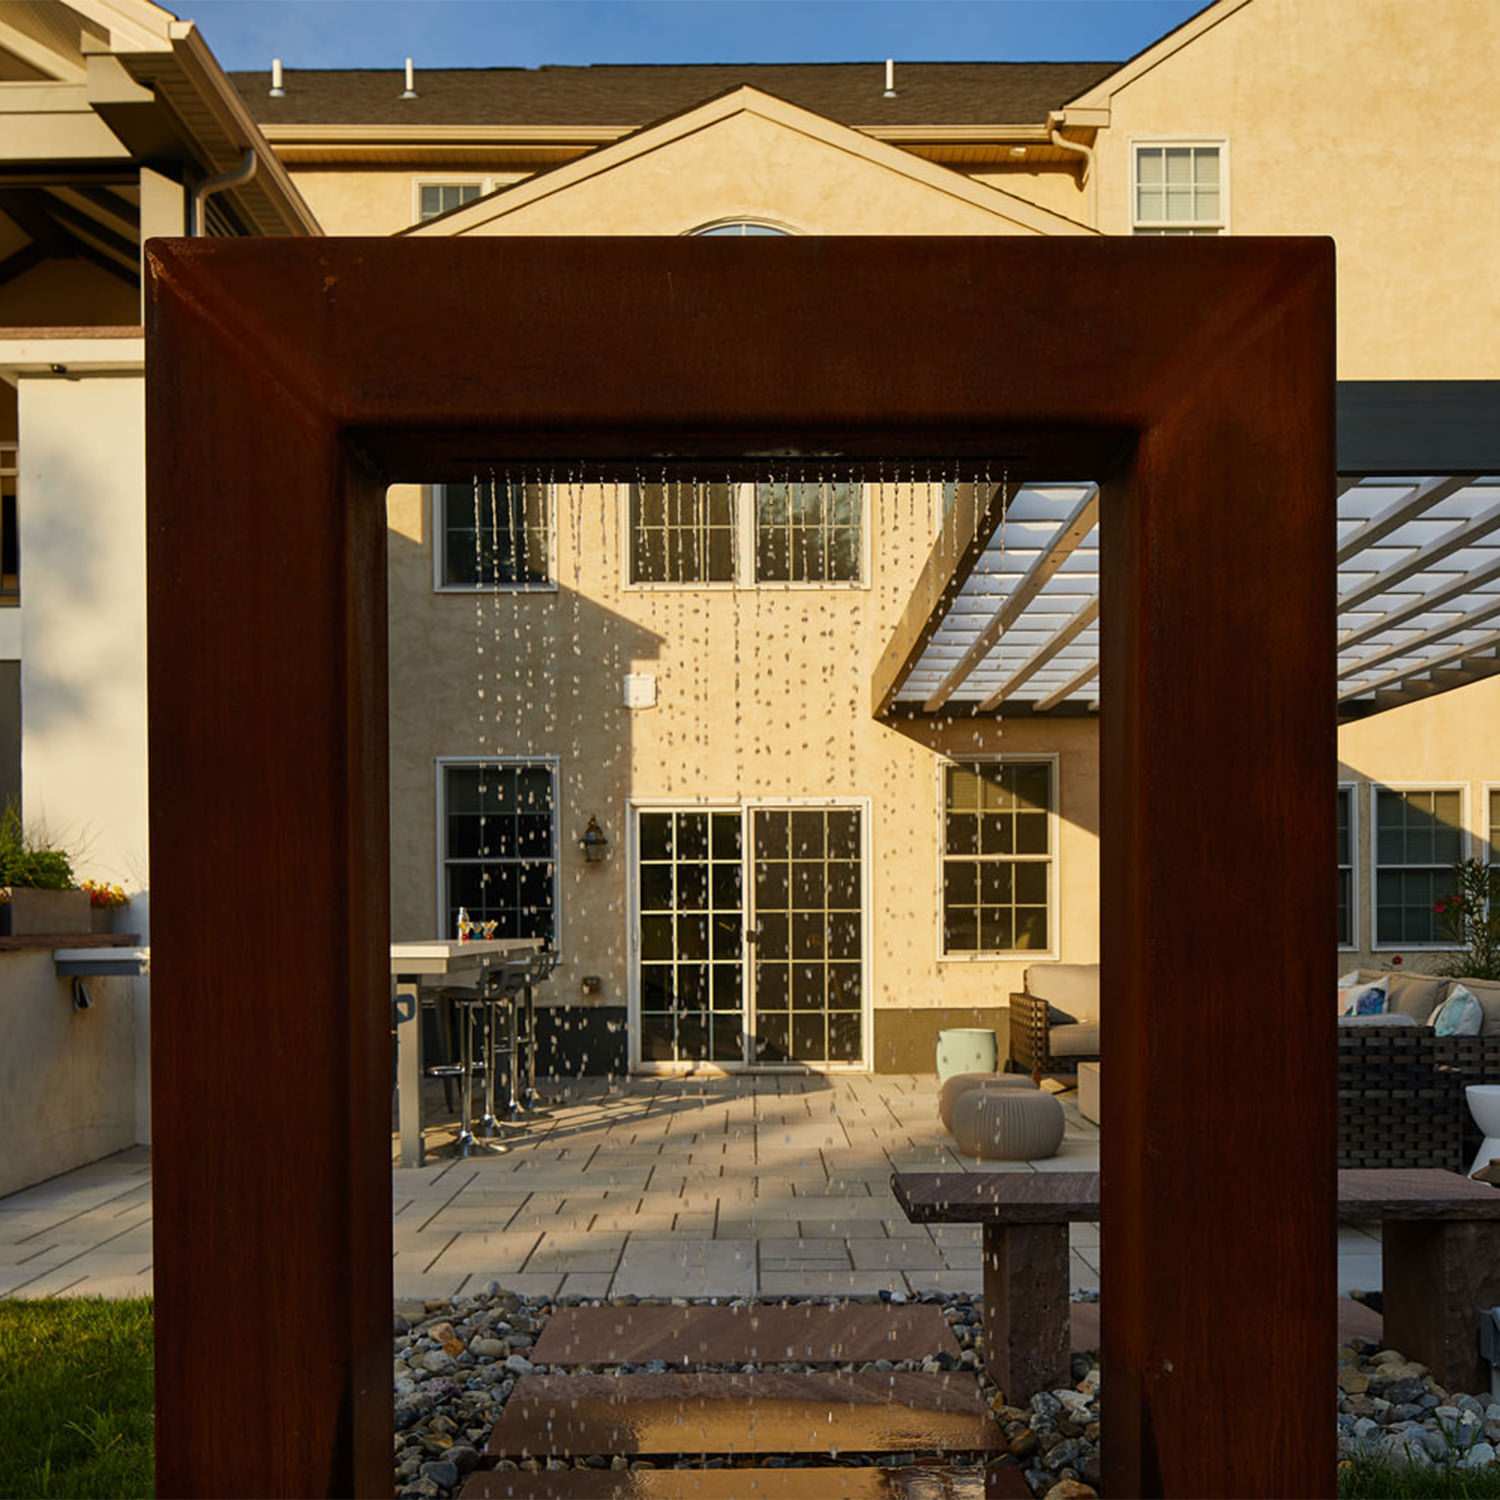 Perfect placement is everything, especially when it comes to focal points when viewed from inside the home!